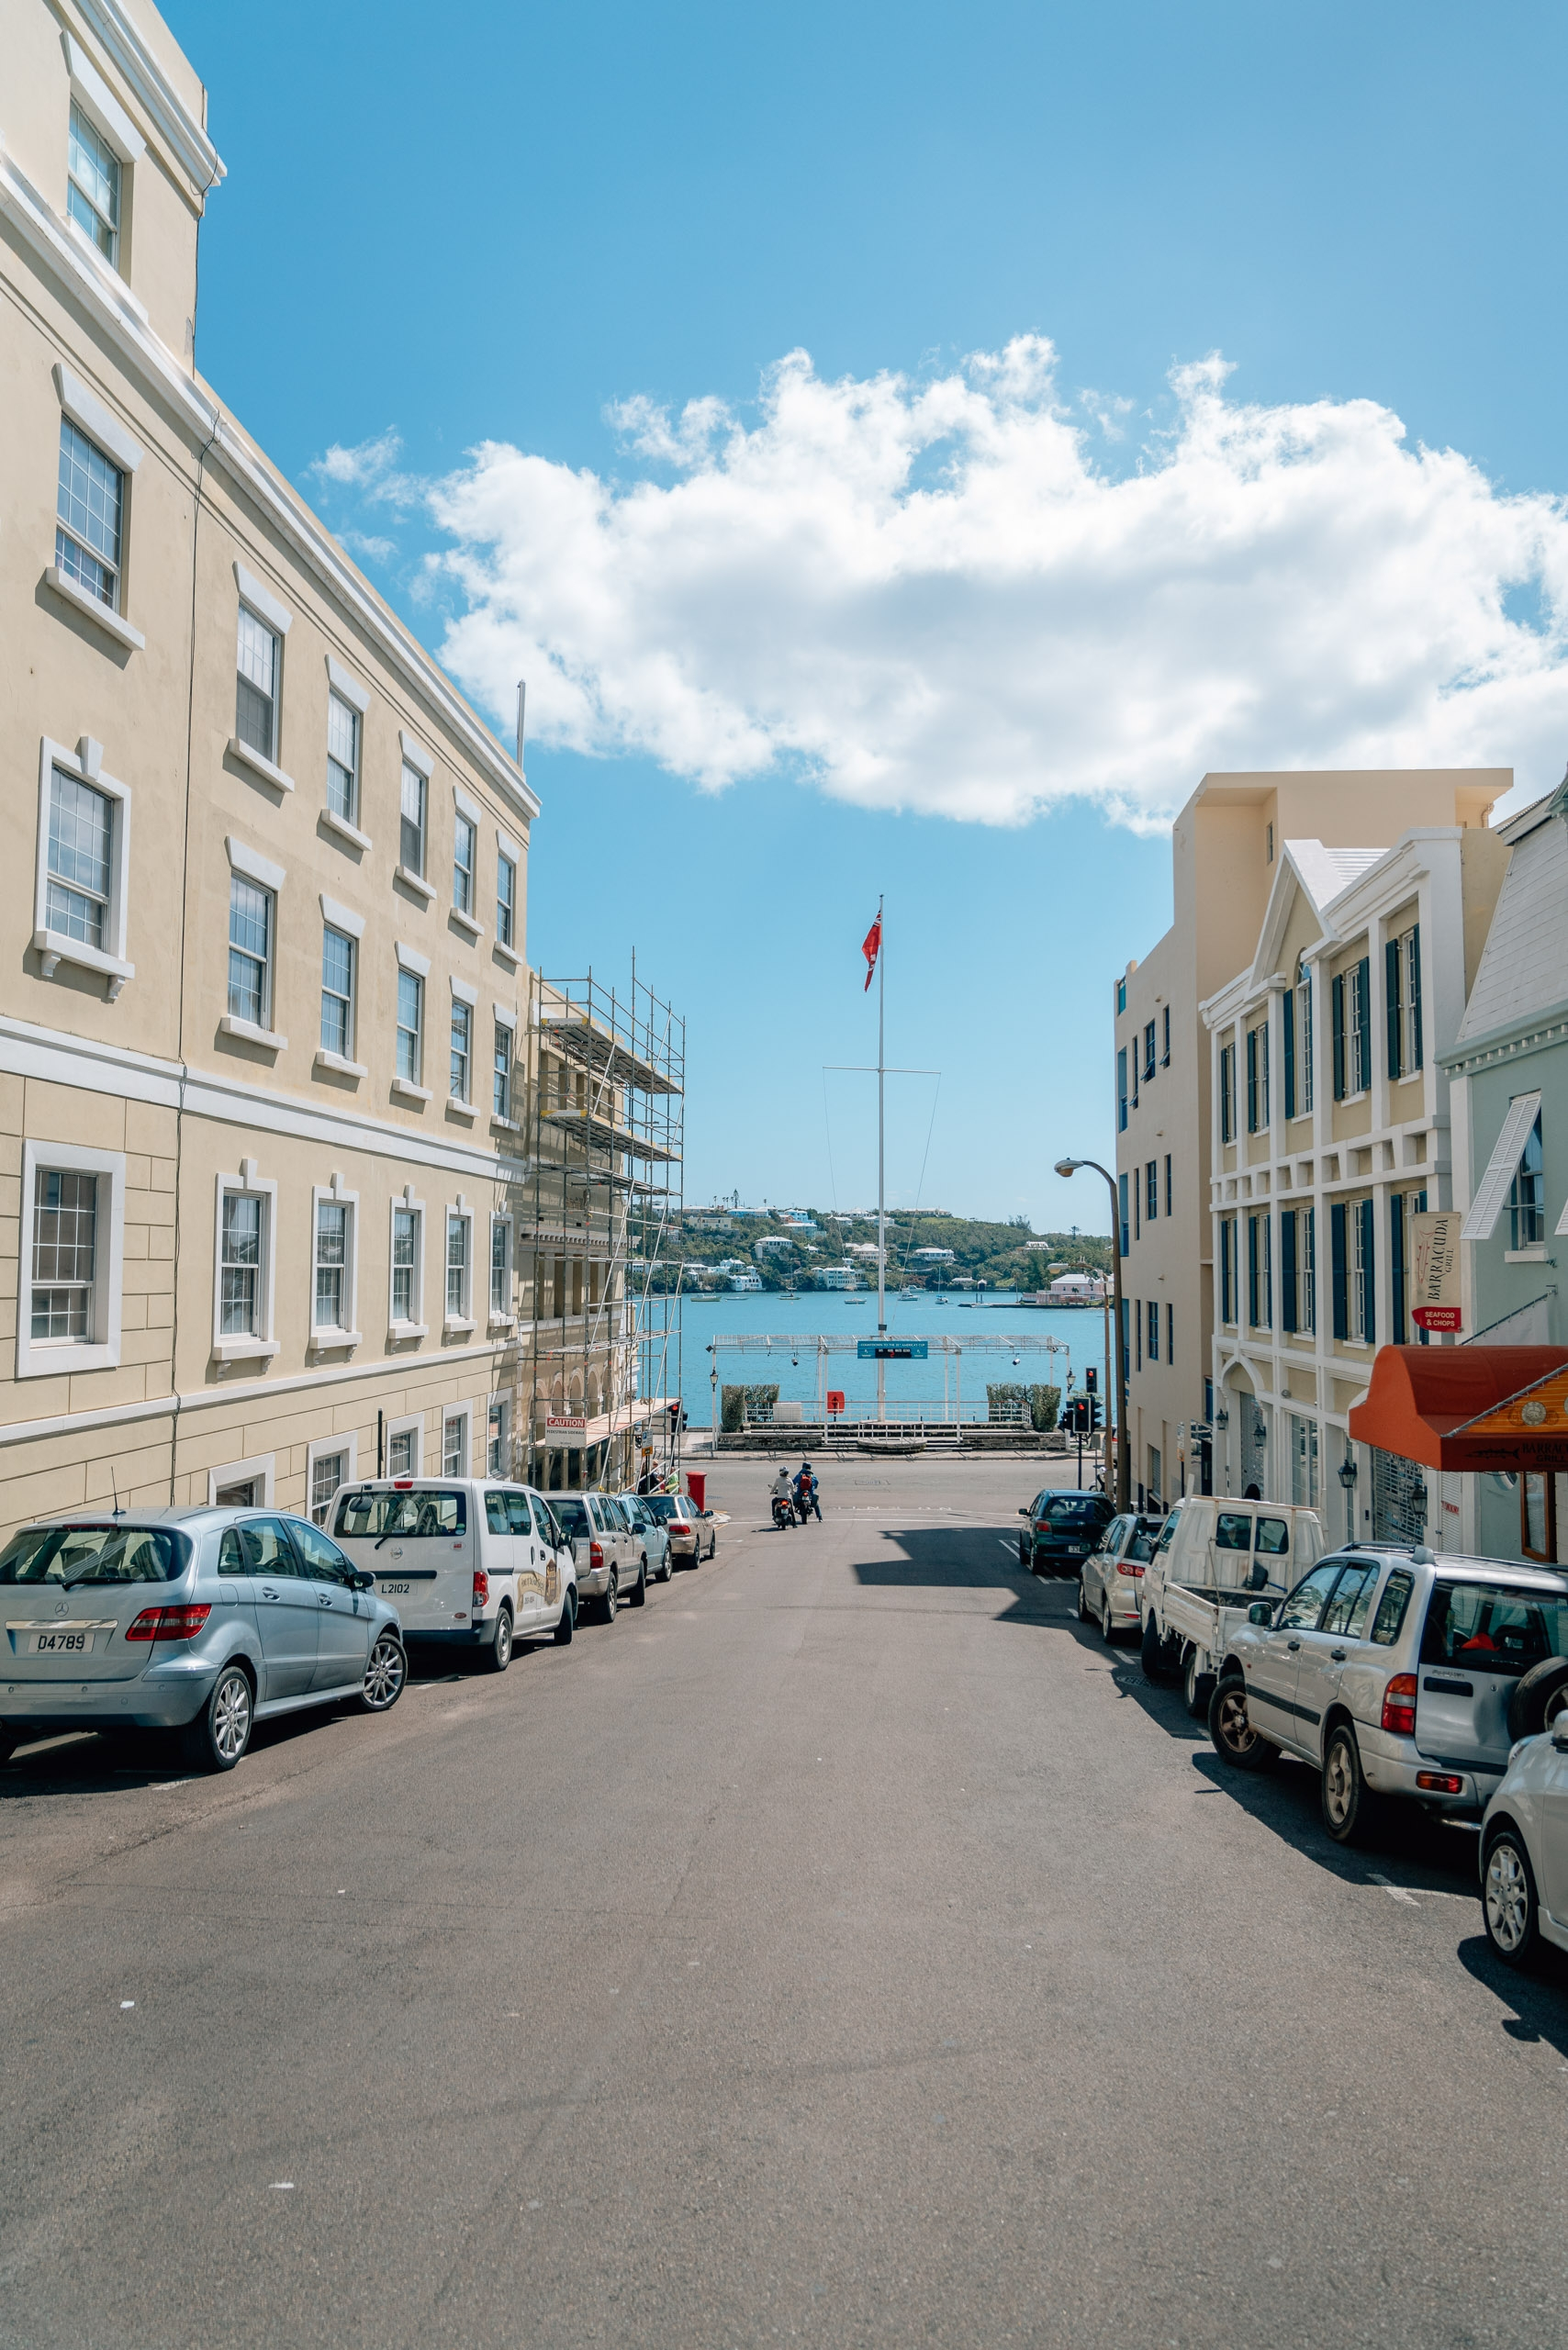 Countdown to the Americas Cup 2017 in Downtown Hamilton Bermuda